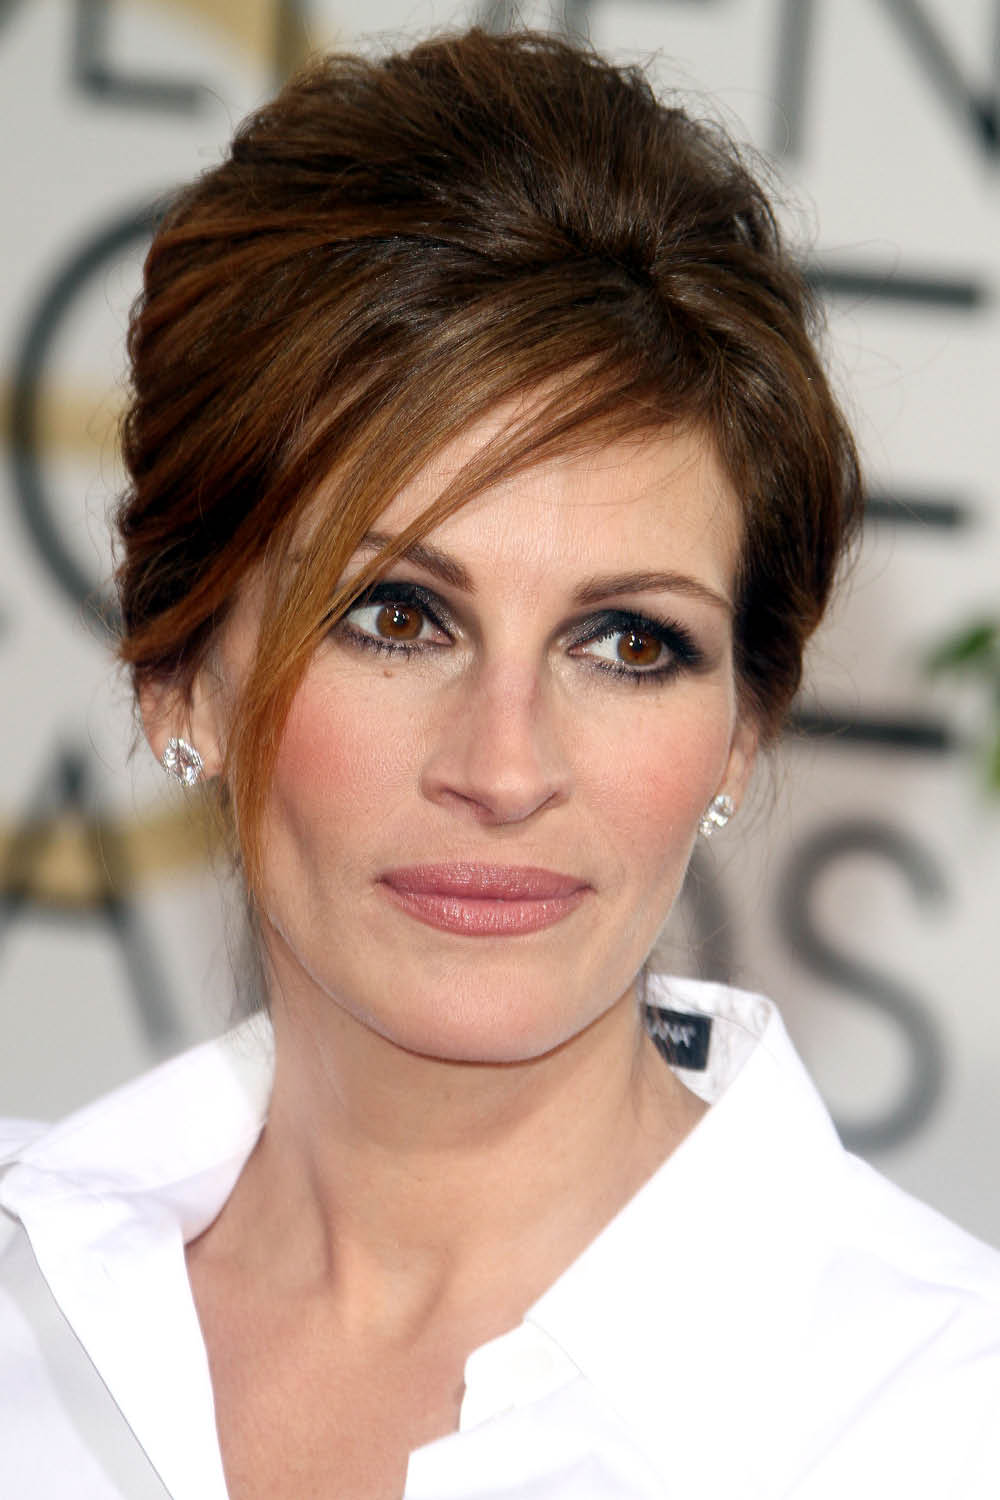 Julia Roberts horoscopo escorpio. Julia Roberts